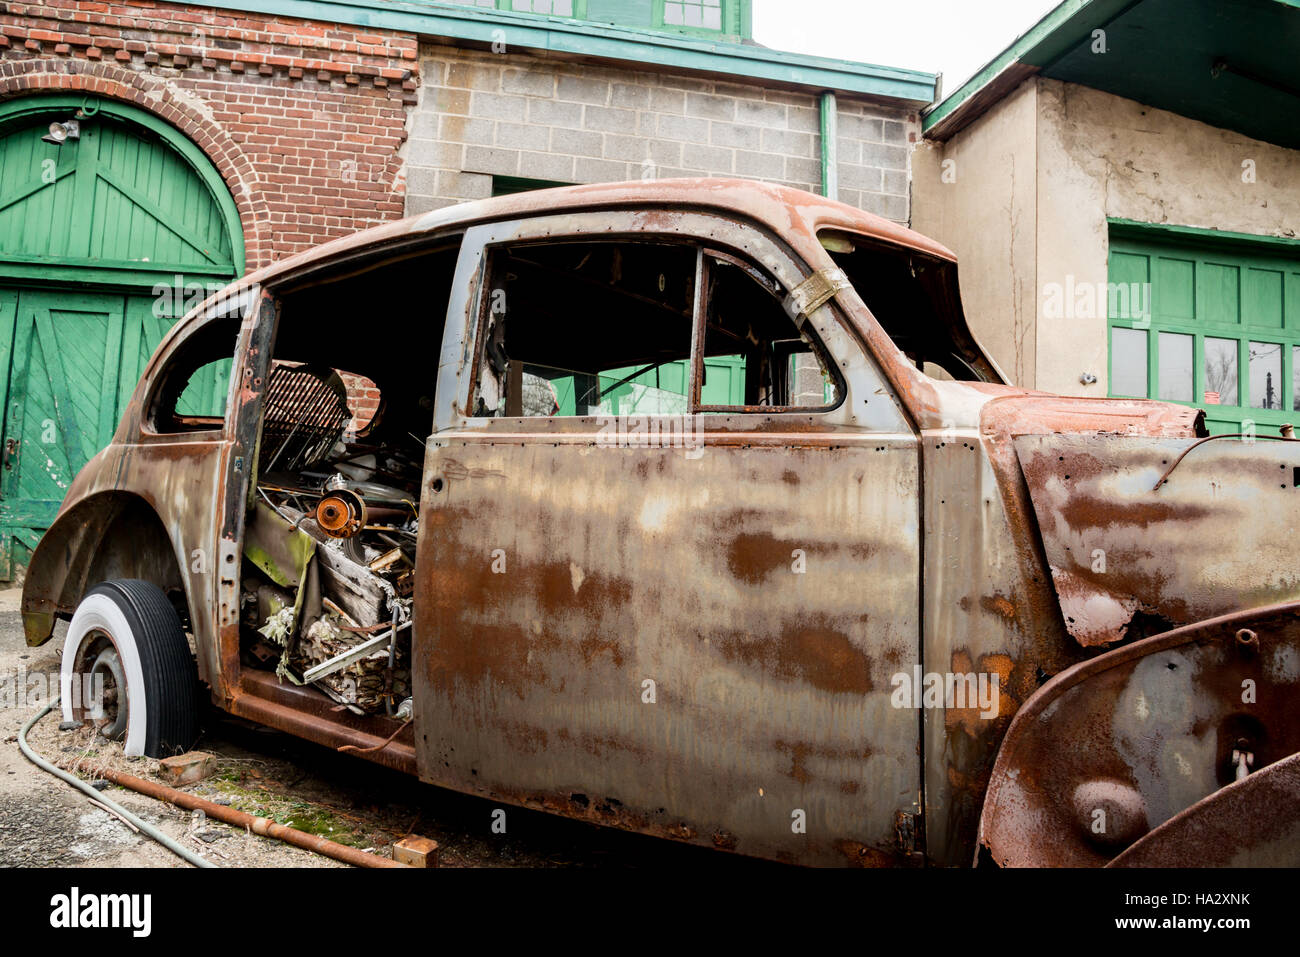 Rusted Vintage Car Parts Stock Photo, Royalty Free Image ...